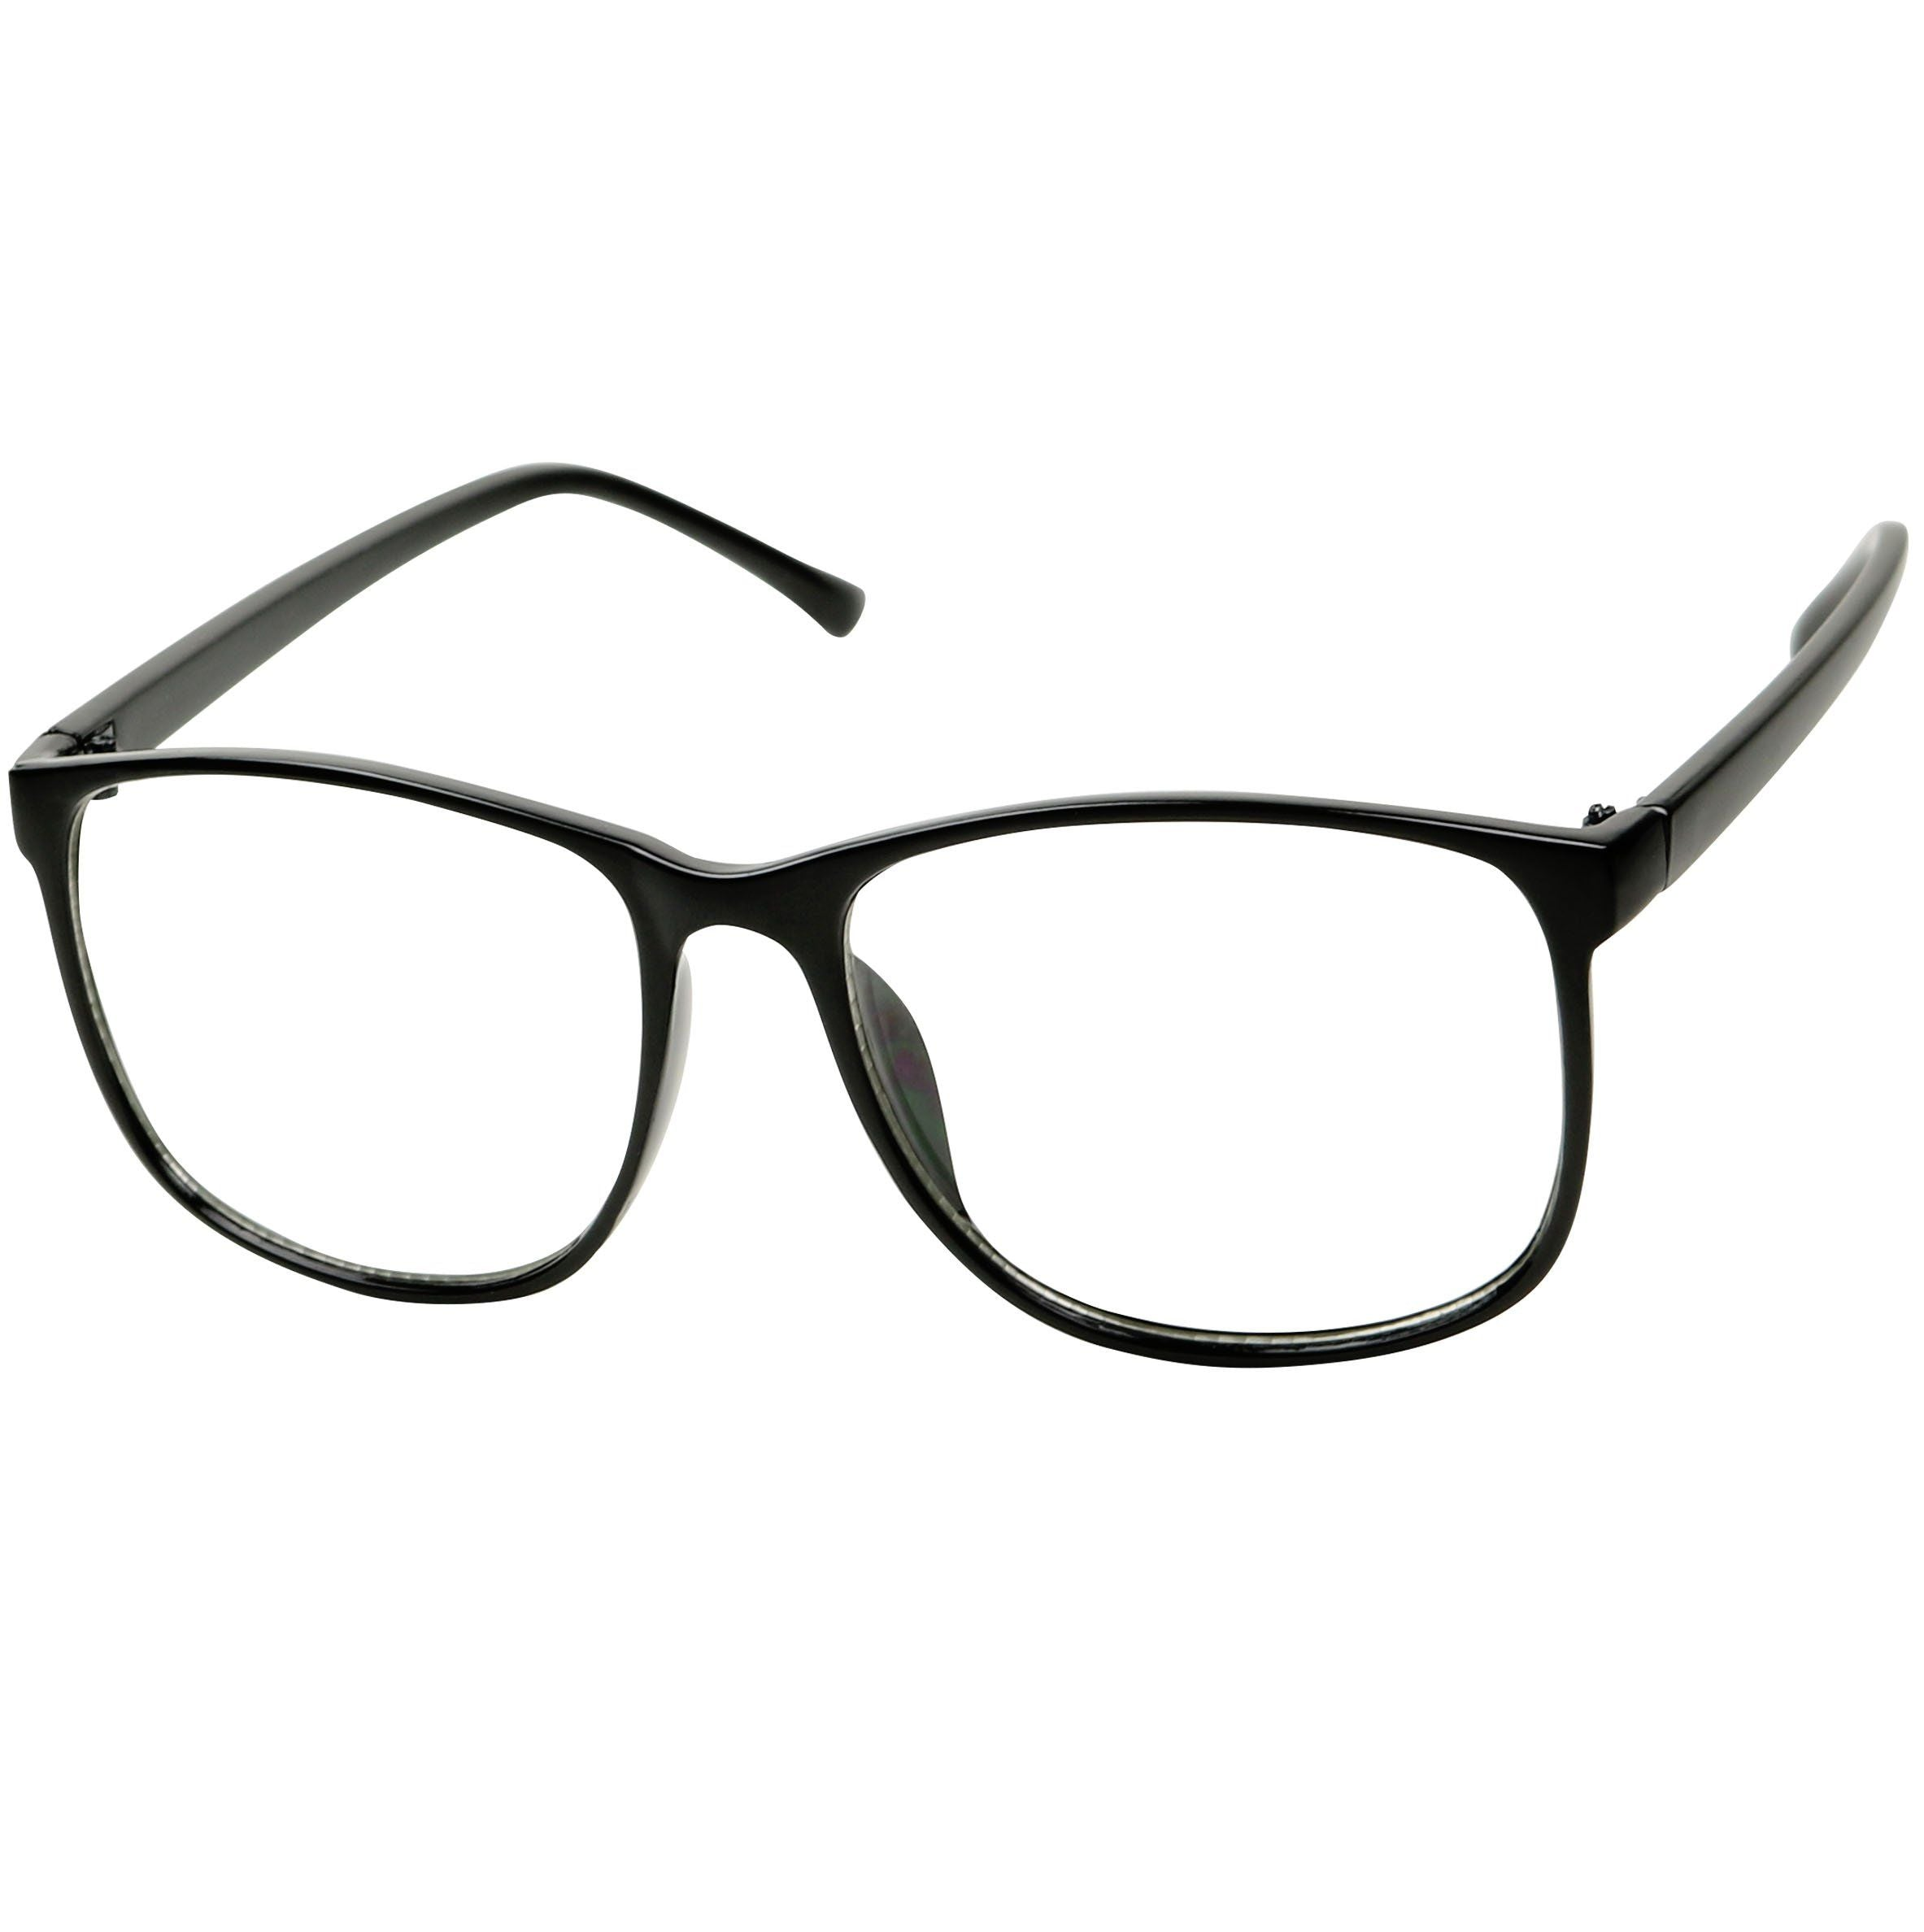 4ab4a26971c ... MONA Retro Fashion Over Sized P3 Geeky Squared-off Round Clear Glasses  - ShadyVEU ...